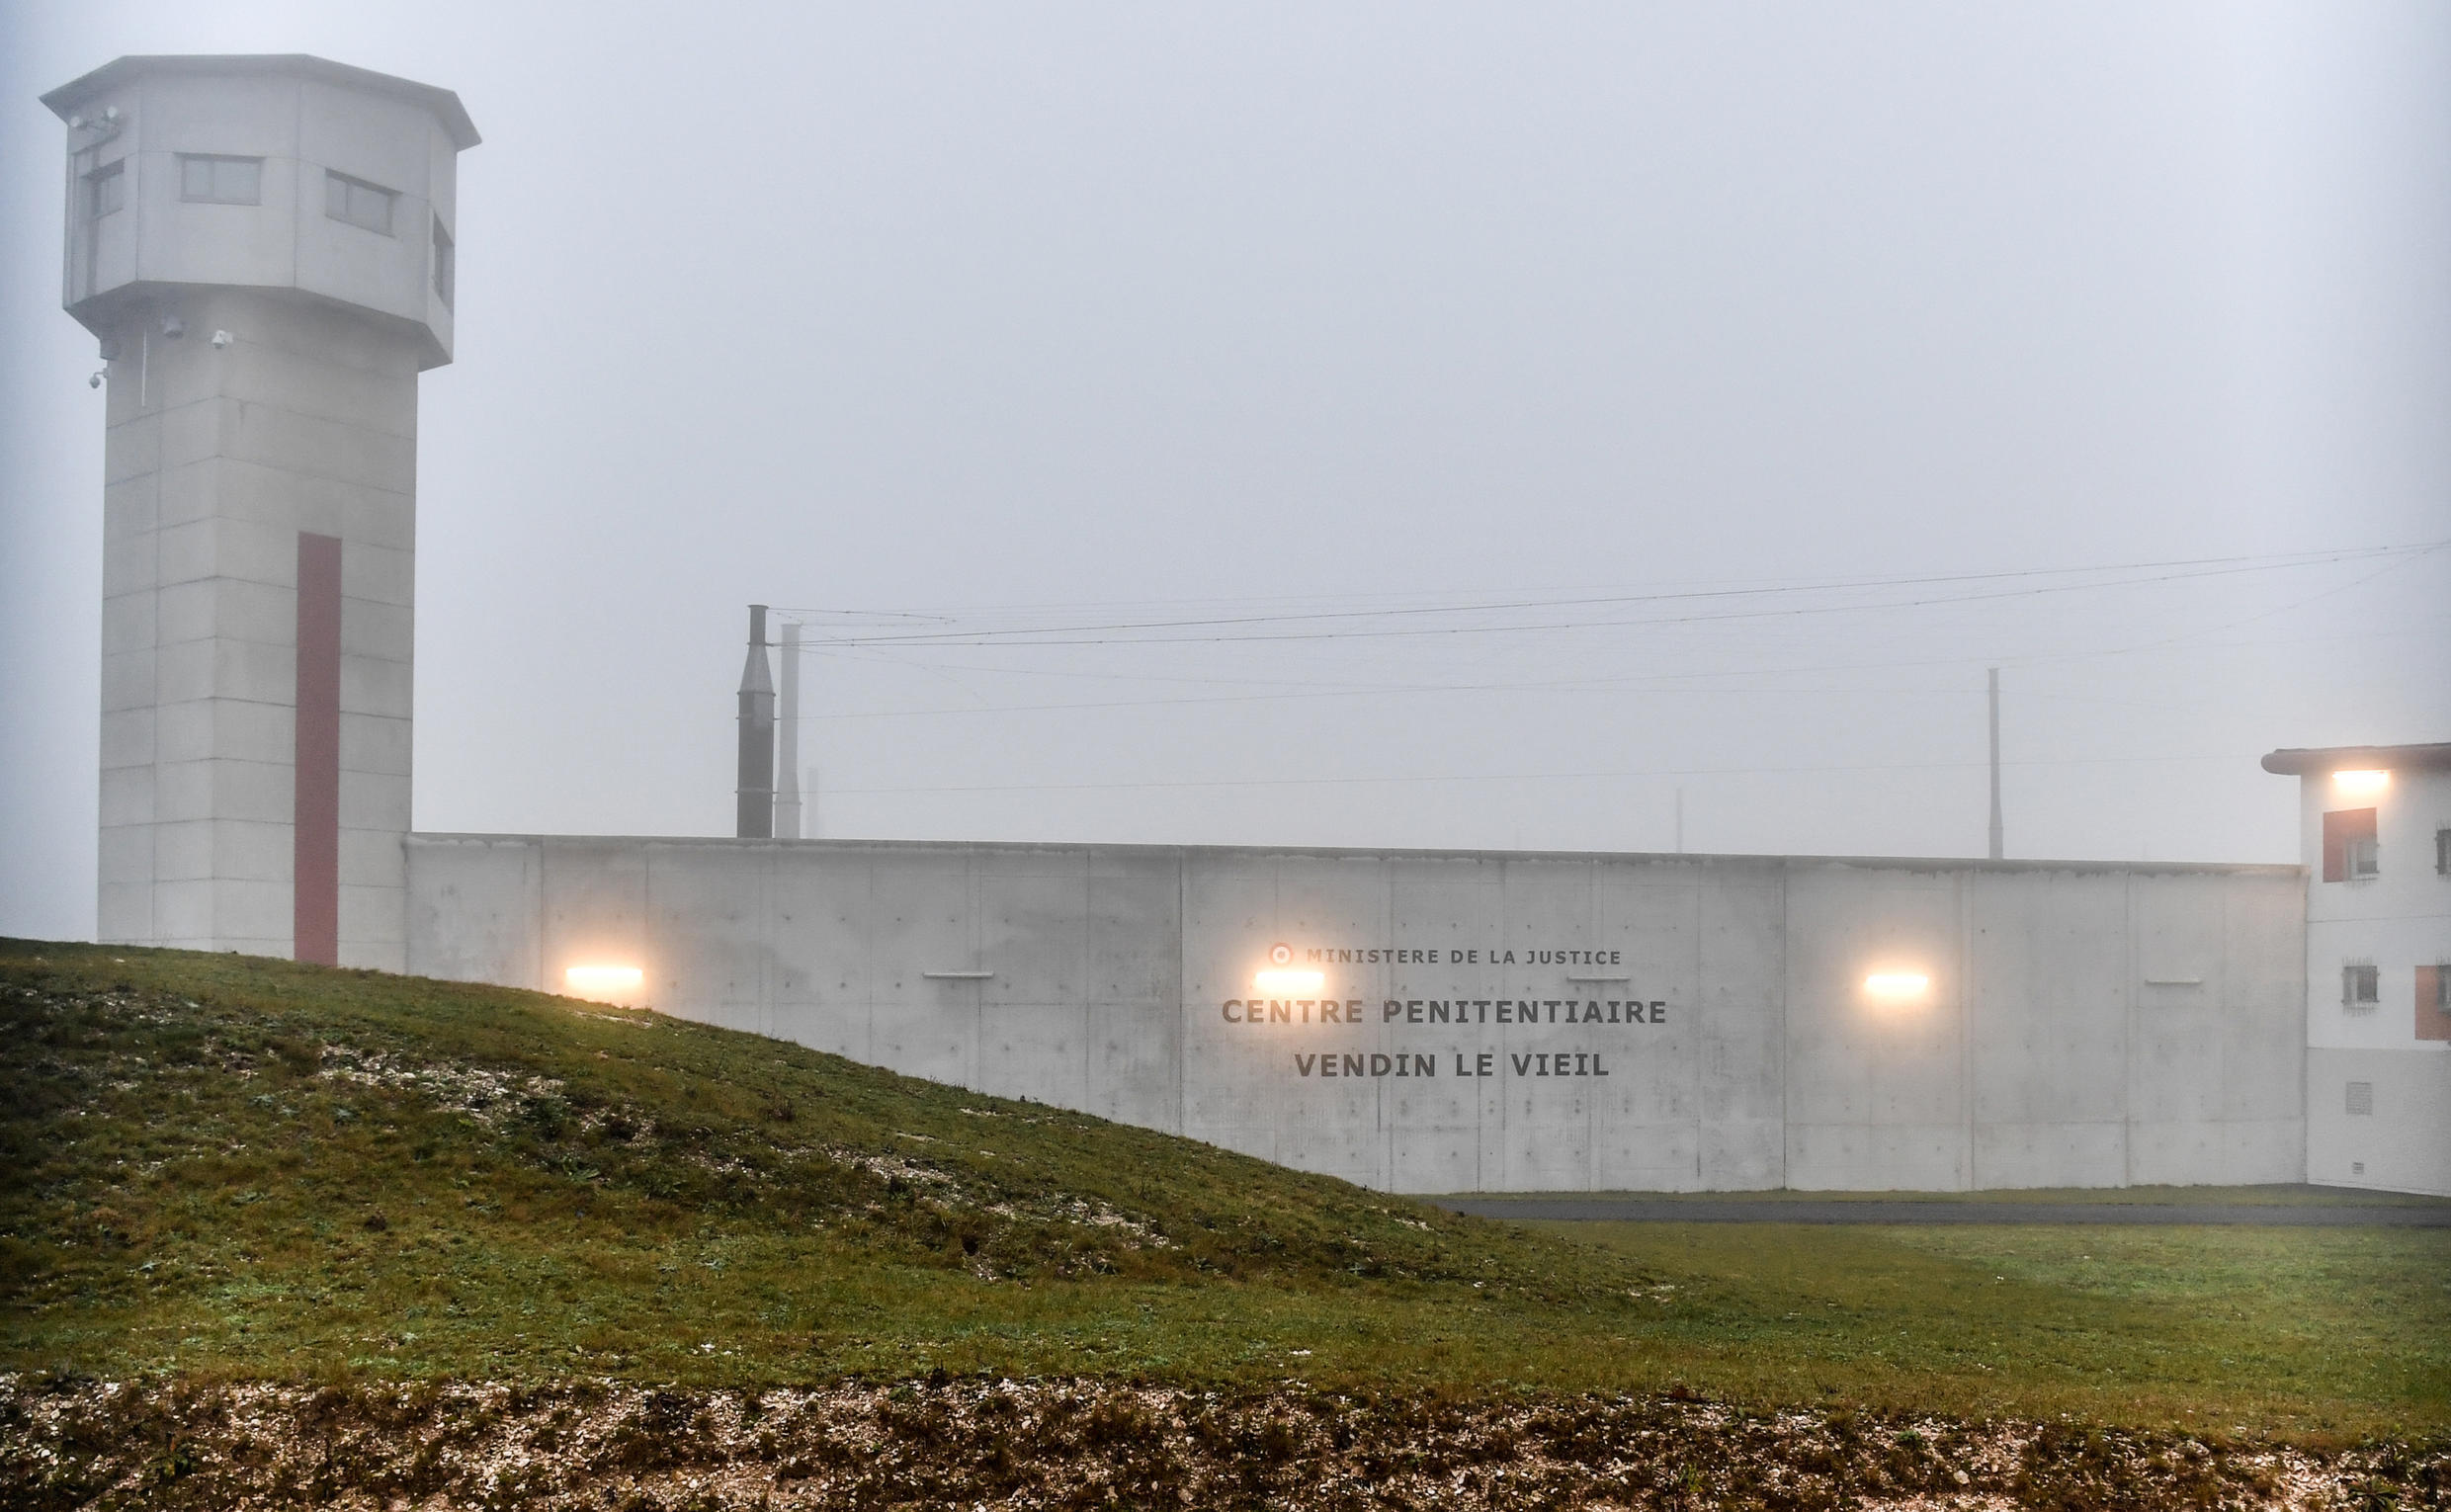 The Vendin-le-Vieil prison, one of four that Council of Europe's Committee for the Prevention of Torture visited to produce its critical report.